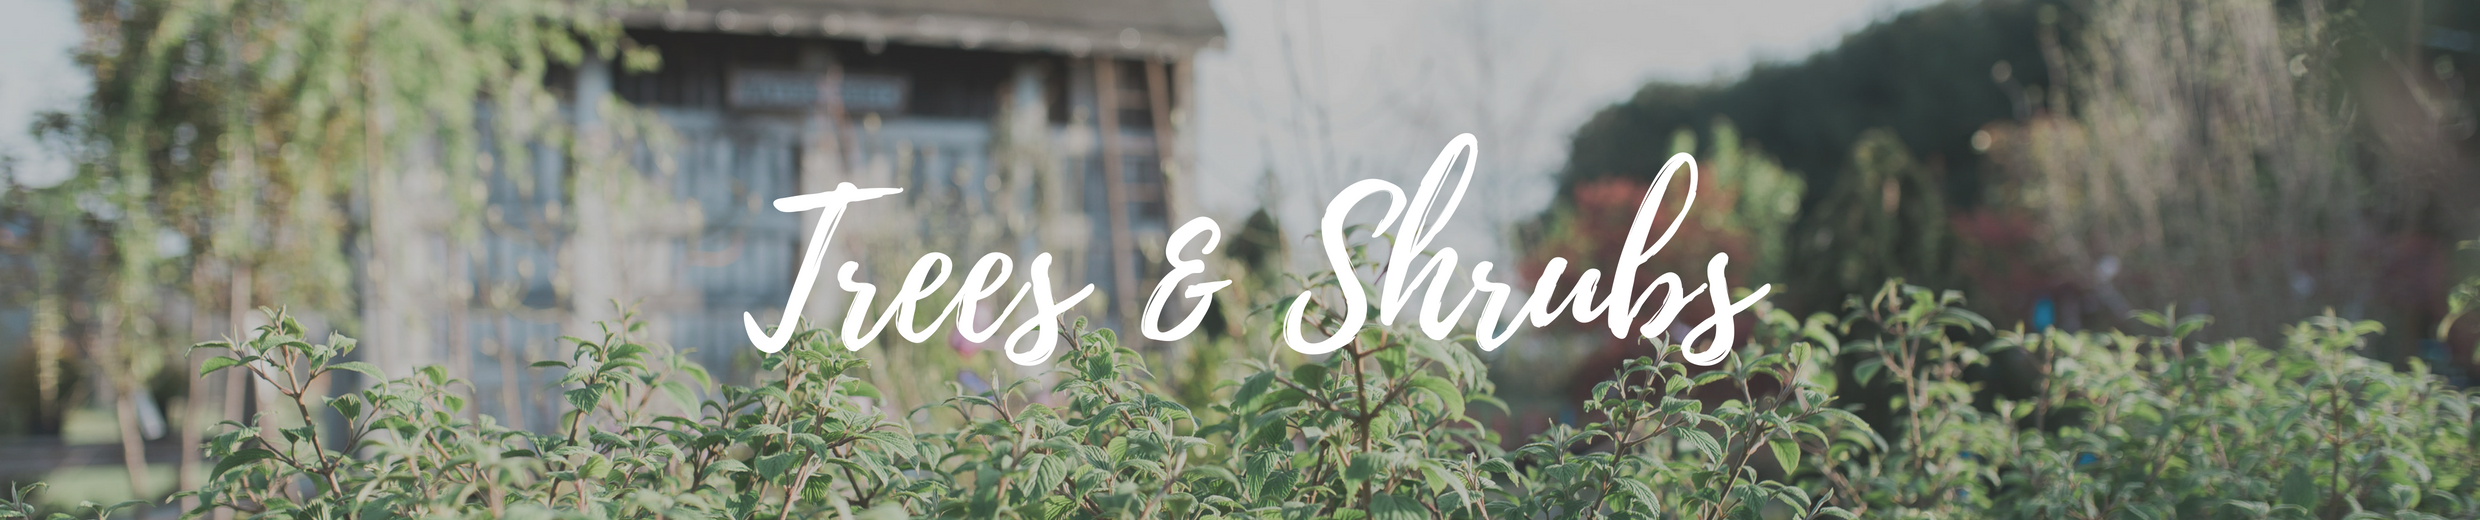 trees-shrubs